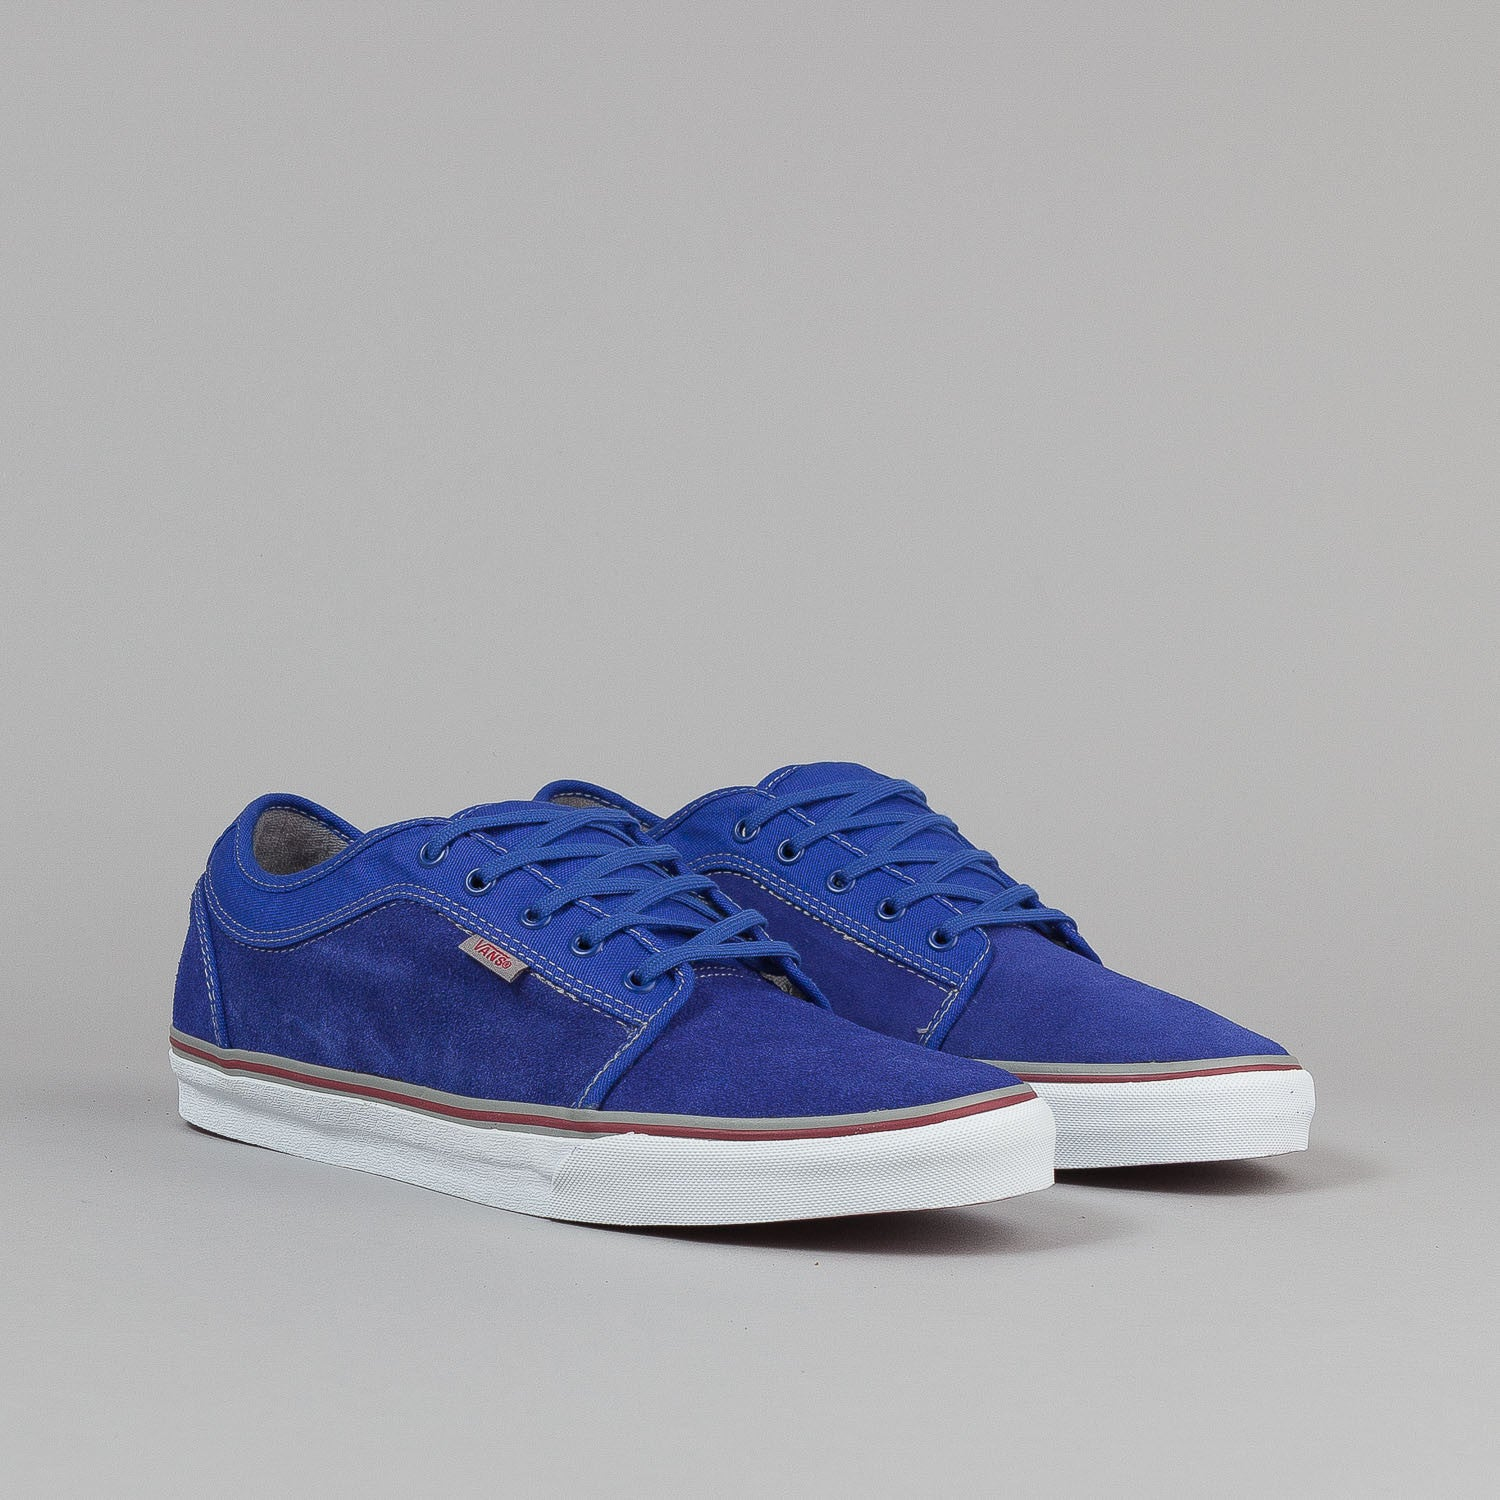 Vans Chukka Low Shoes - Royal / Mid Grey / Red